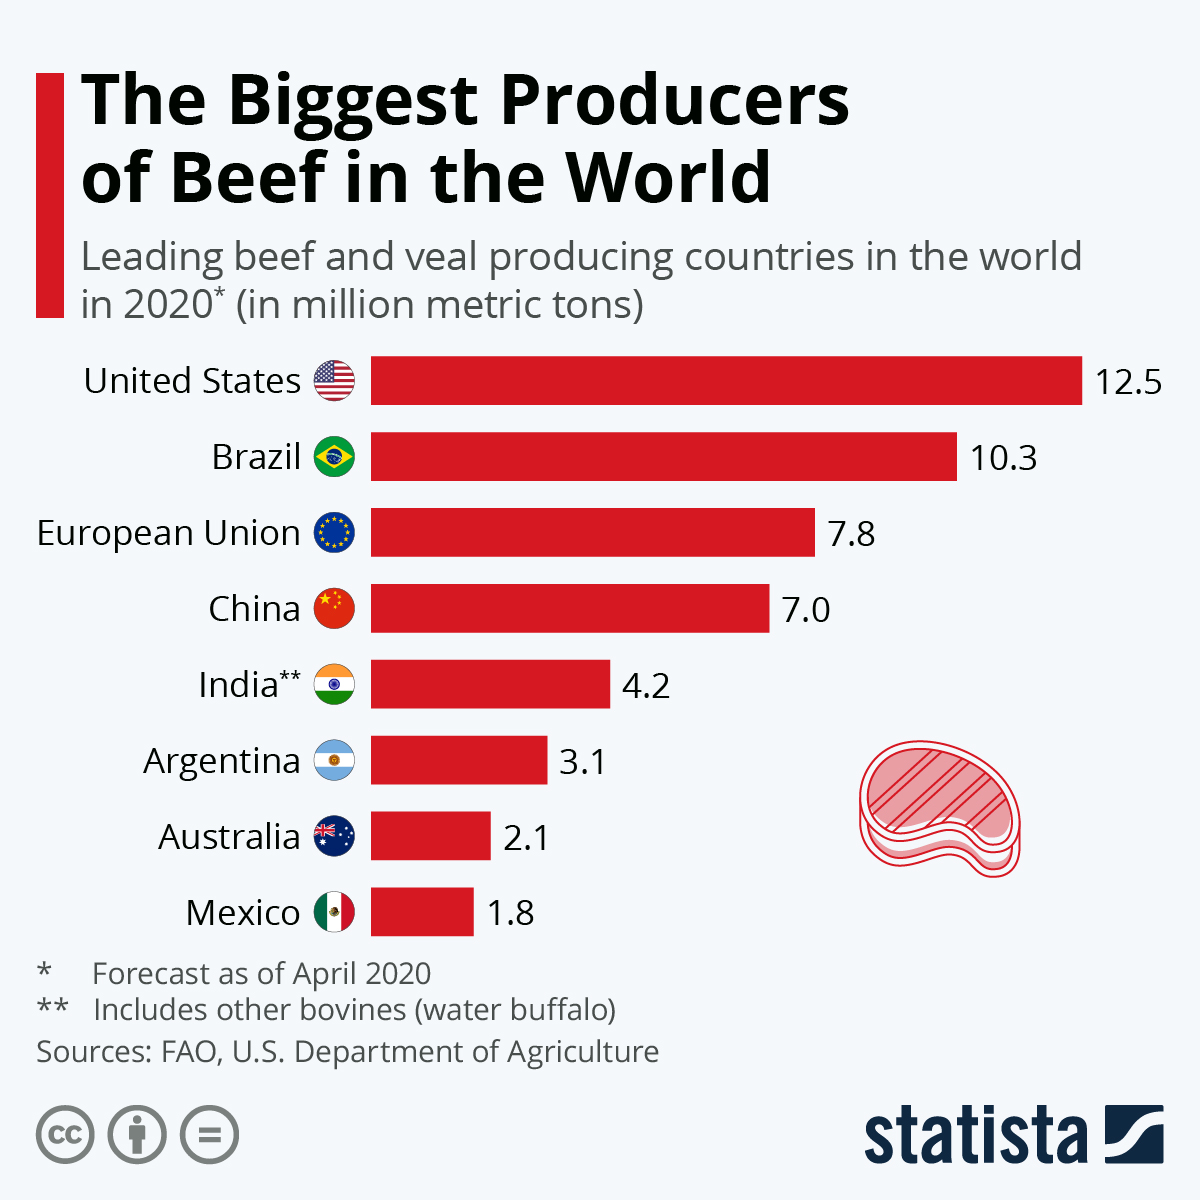 The Biggest Producers of Beef in the World